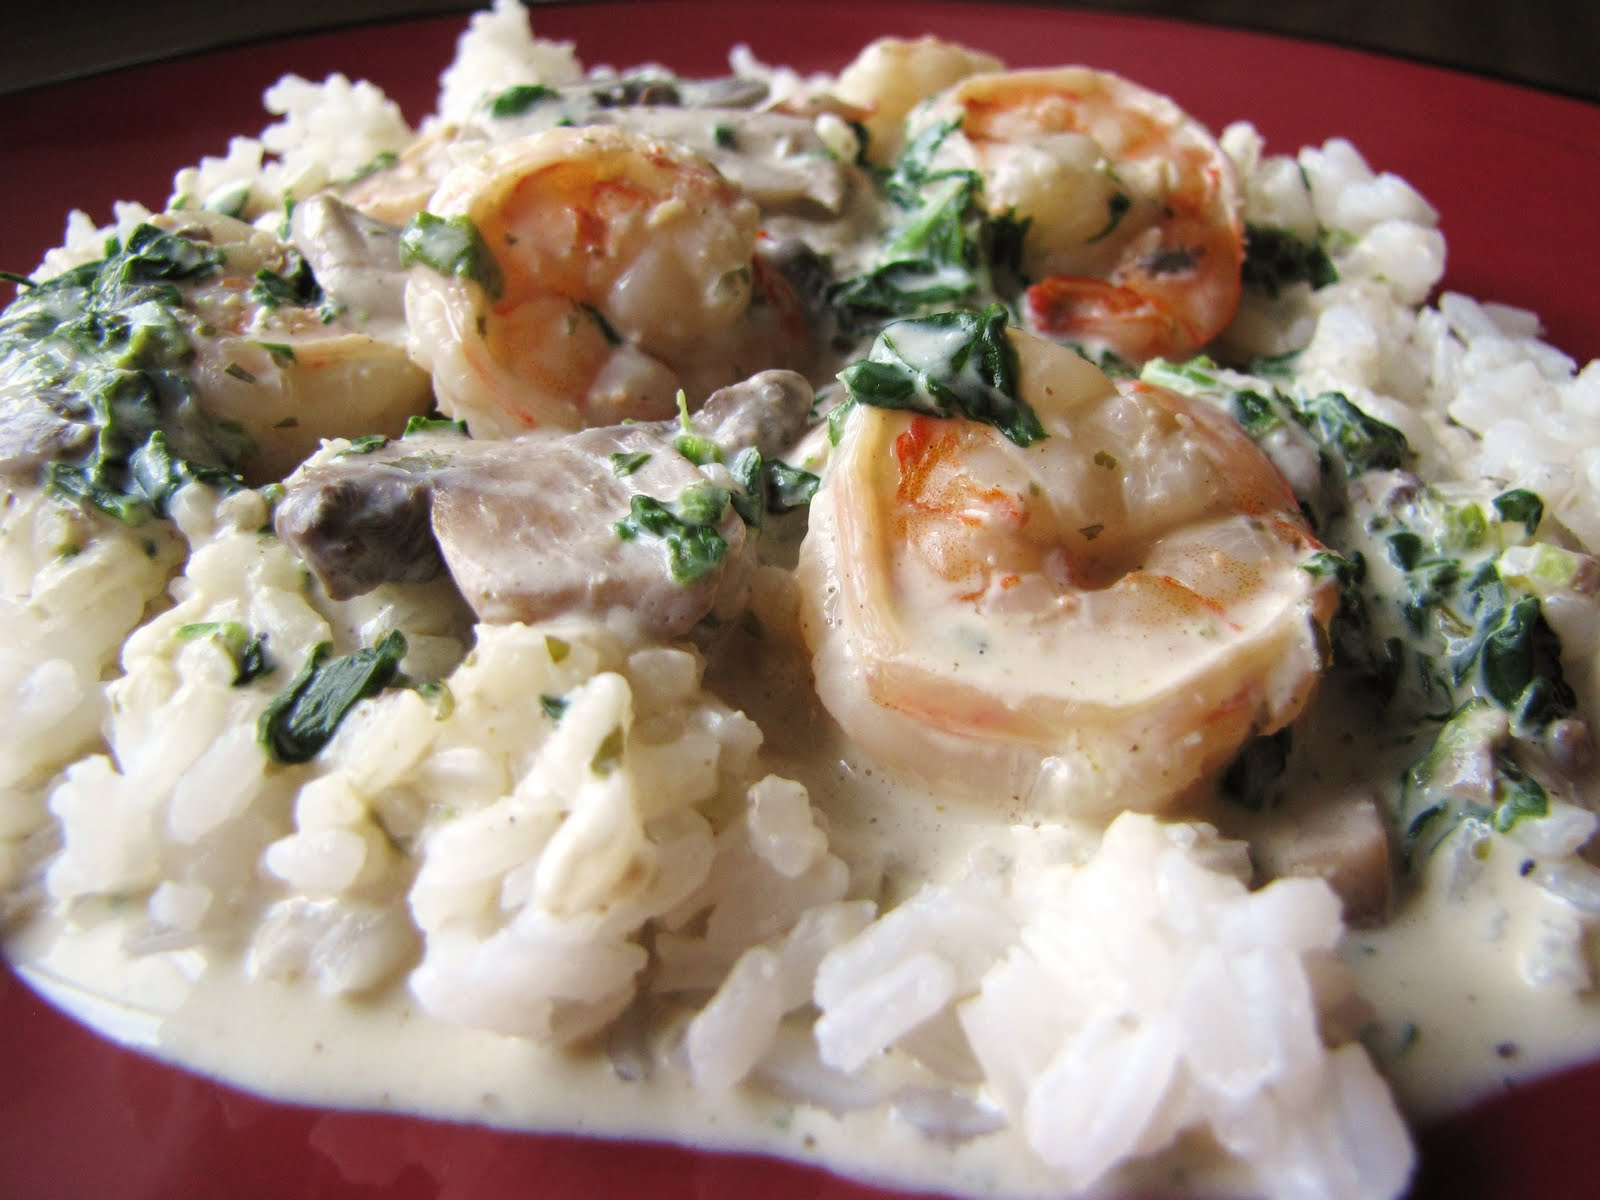 Shrimp with Mushrooms and Spinach in a Creamy Herb and White Wine Sauce